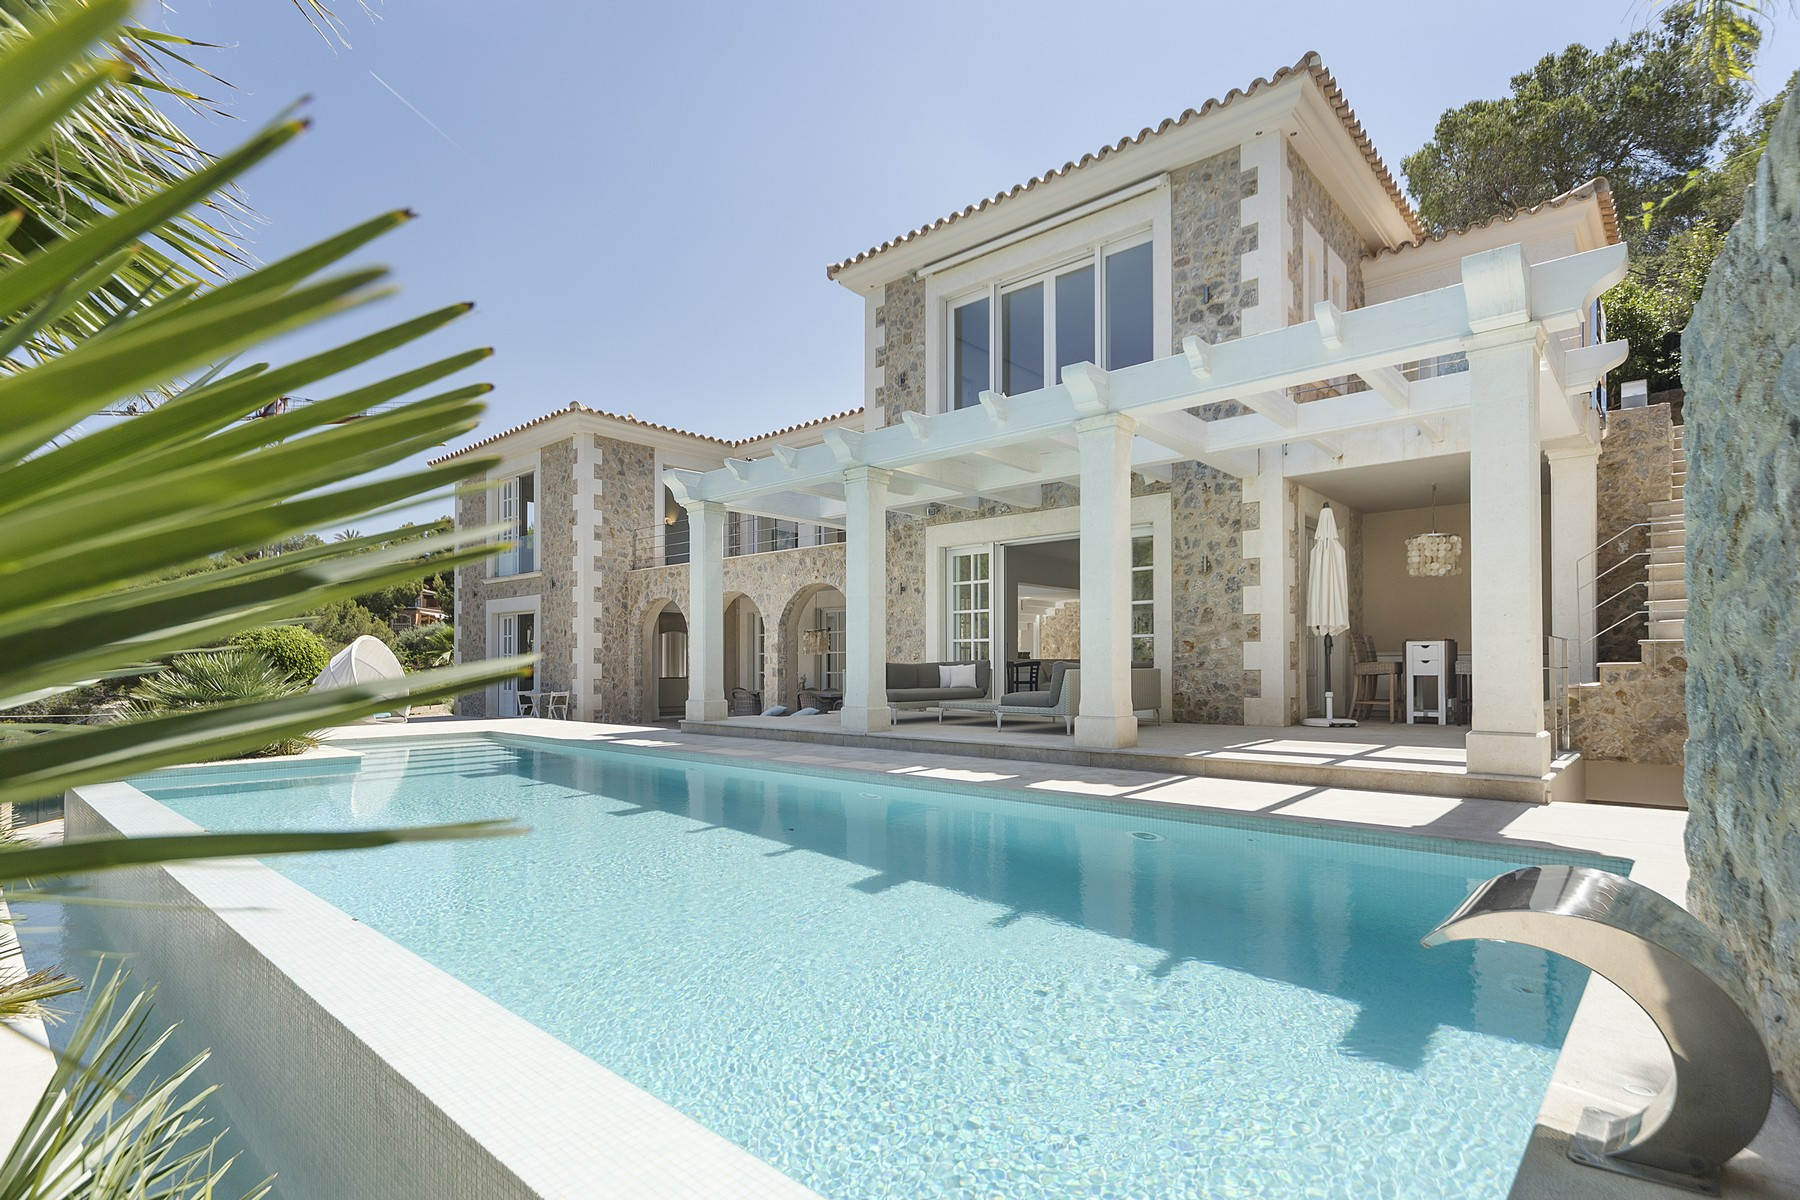 Single Family Home for Sale at Mediterranean-style villa in Camp de Mar Other Balearic Islands, Balearic Islands, Spain